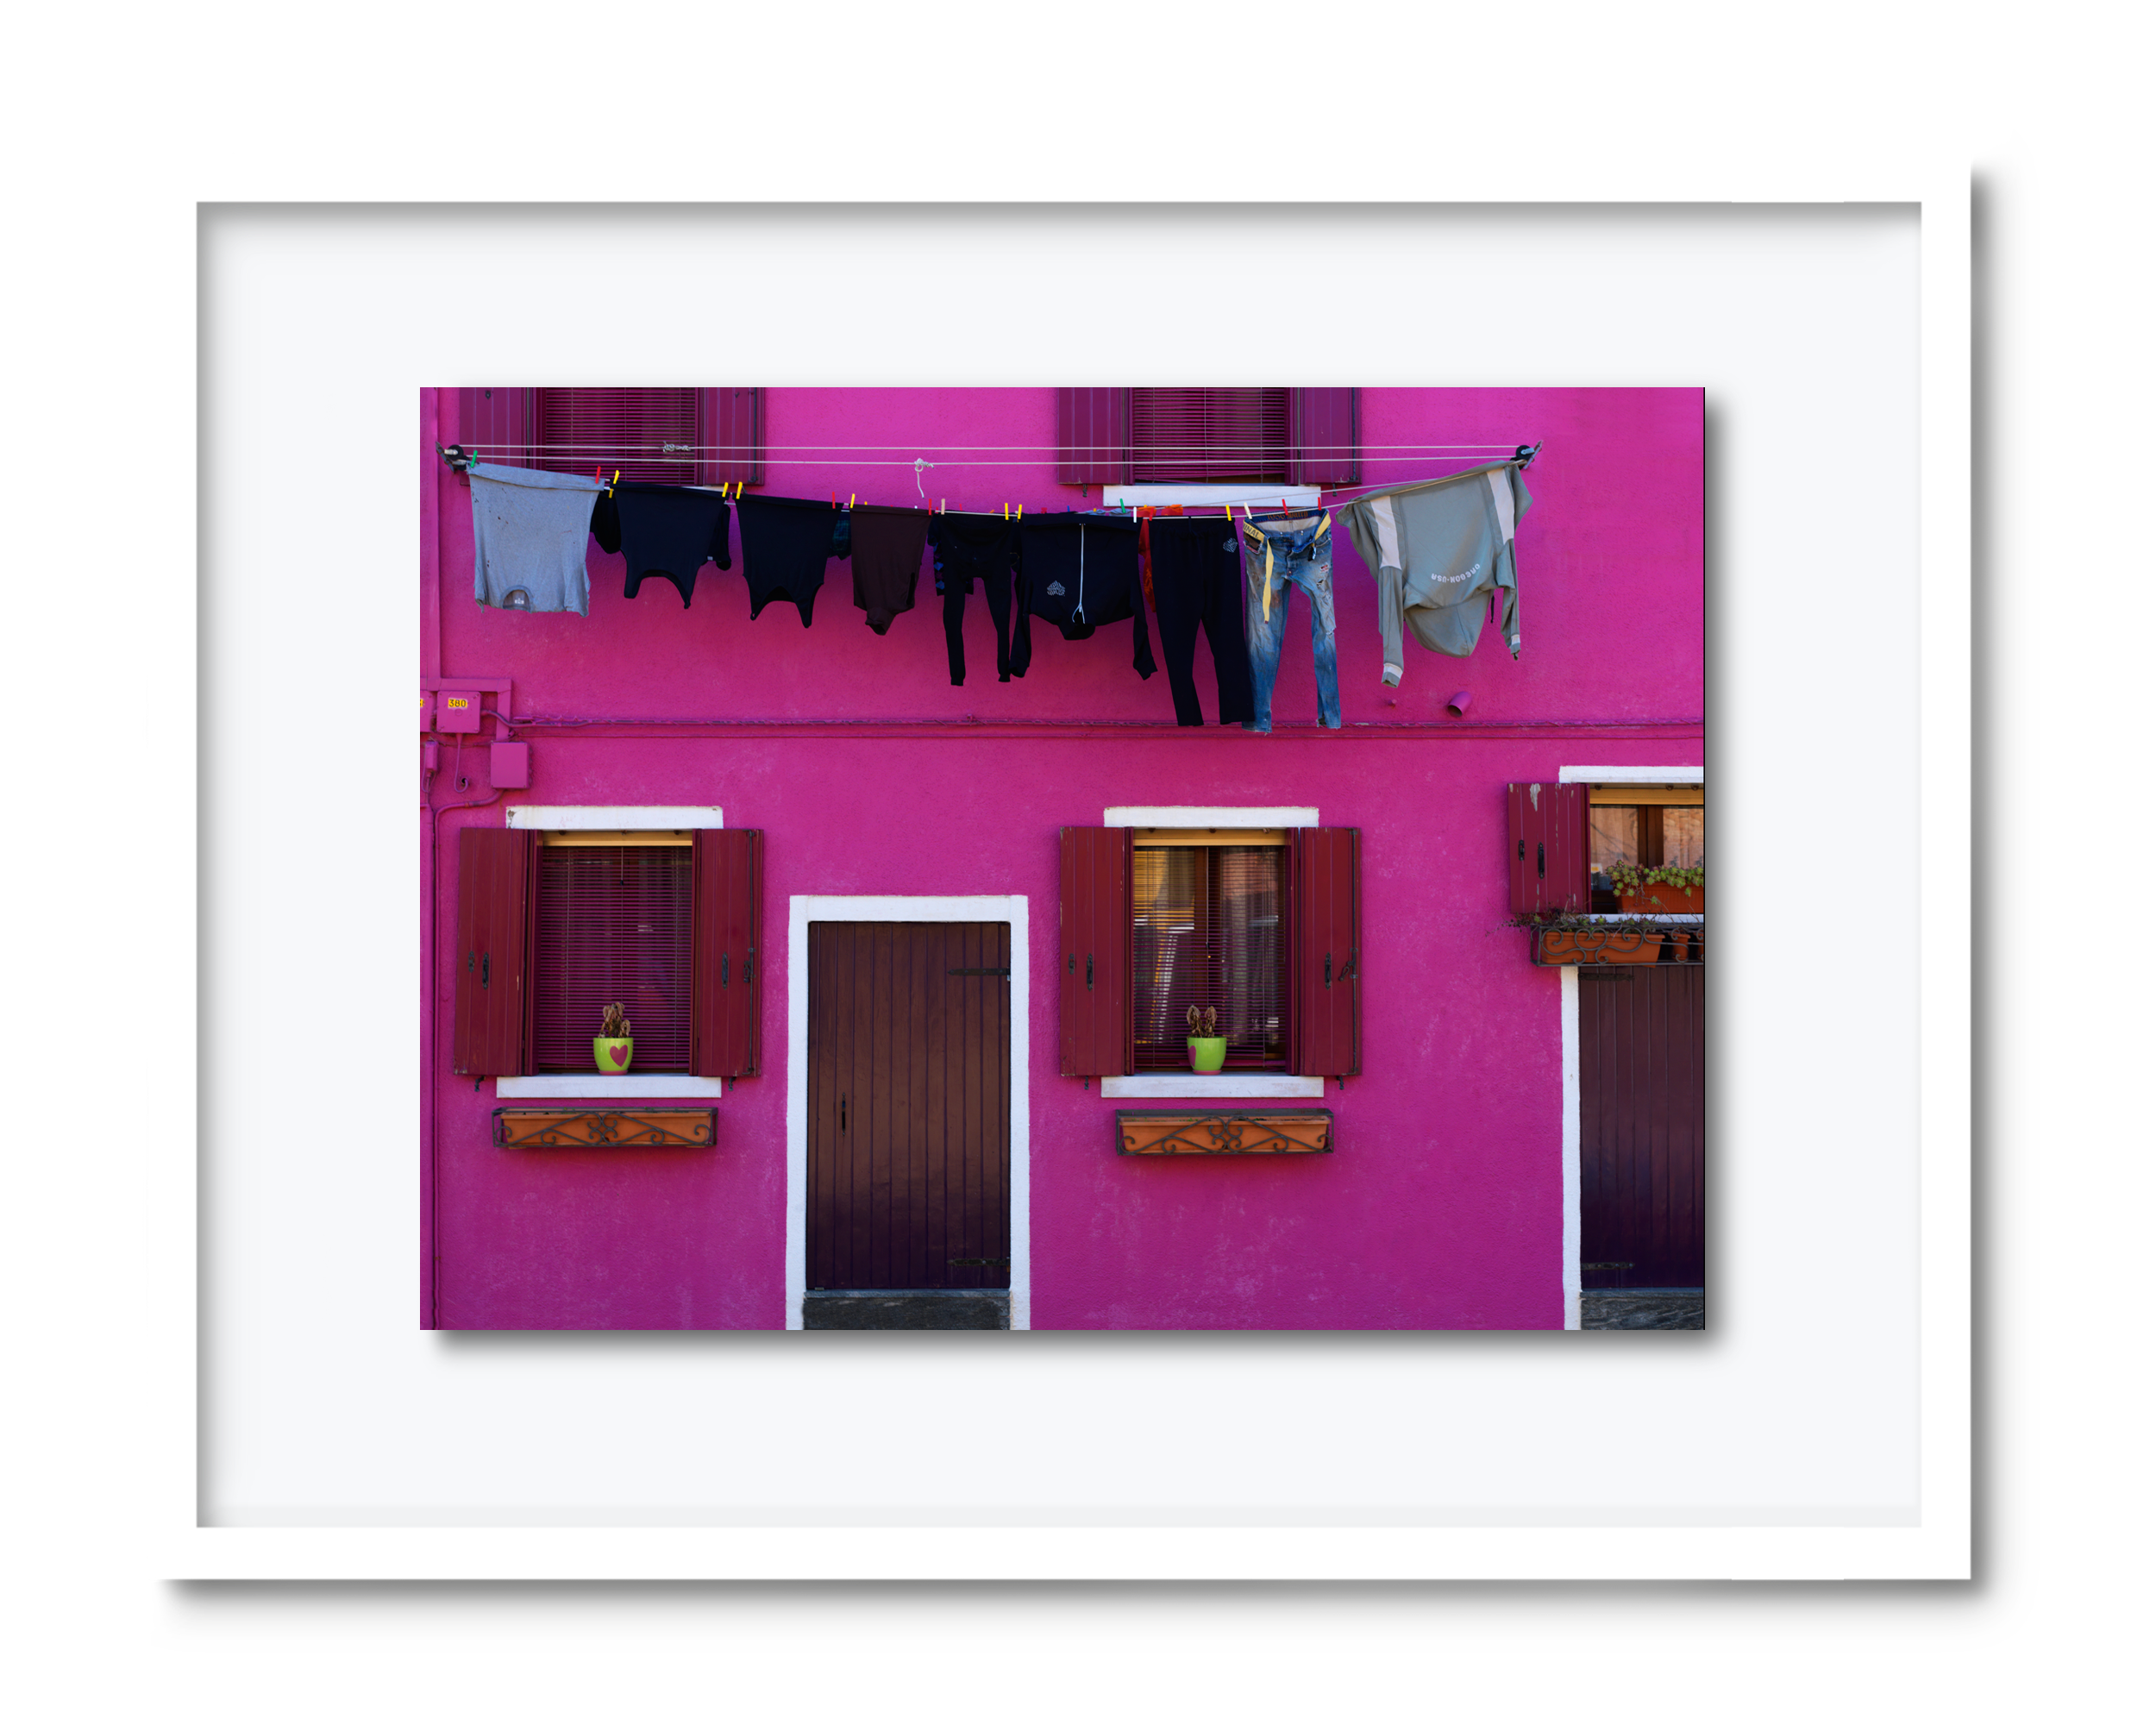 11.david-pearce-colored-building-venice5.png